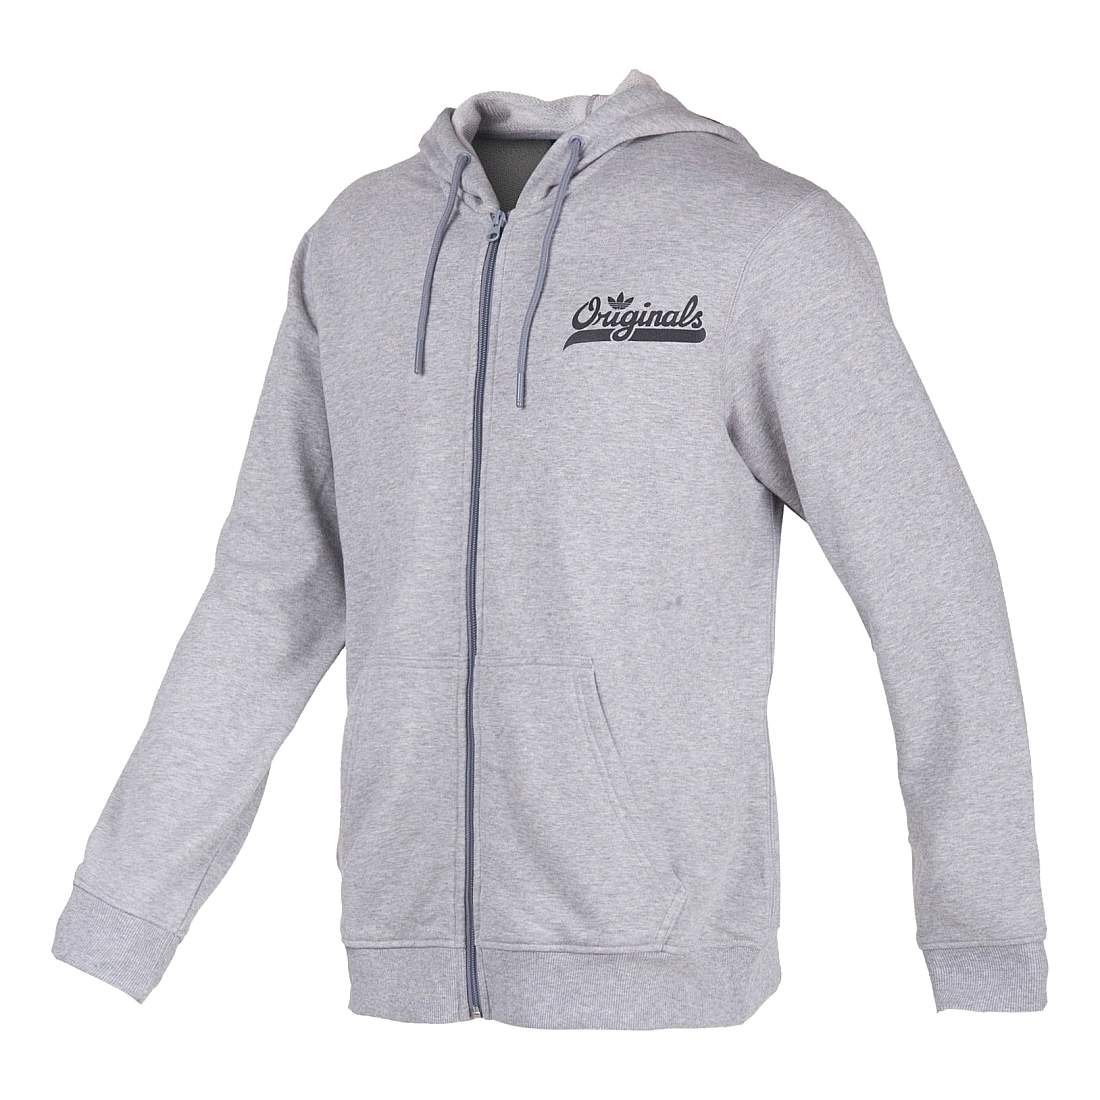 f6a274399 Details about Adidas Mens Grey Black Originals Long Sleeve Graphic Hoodie